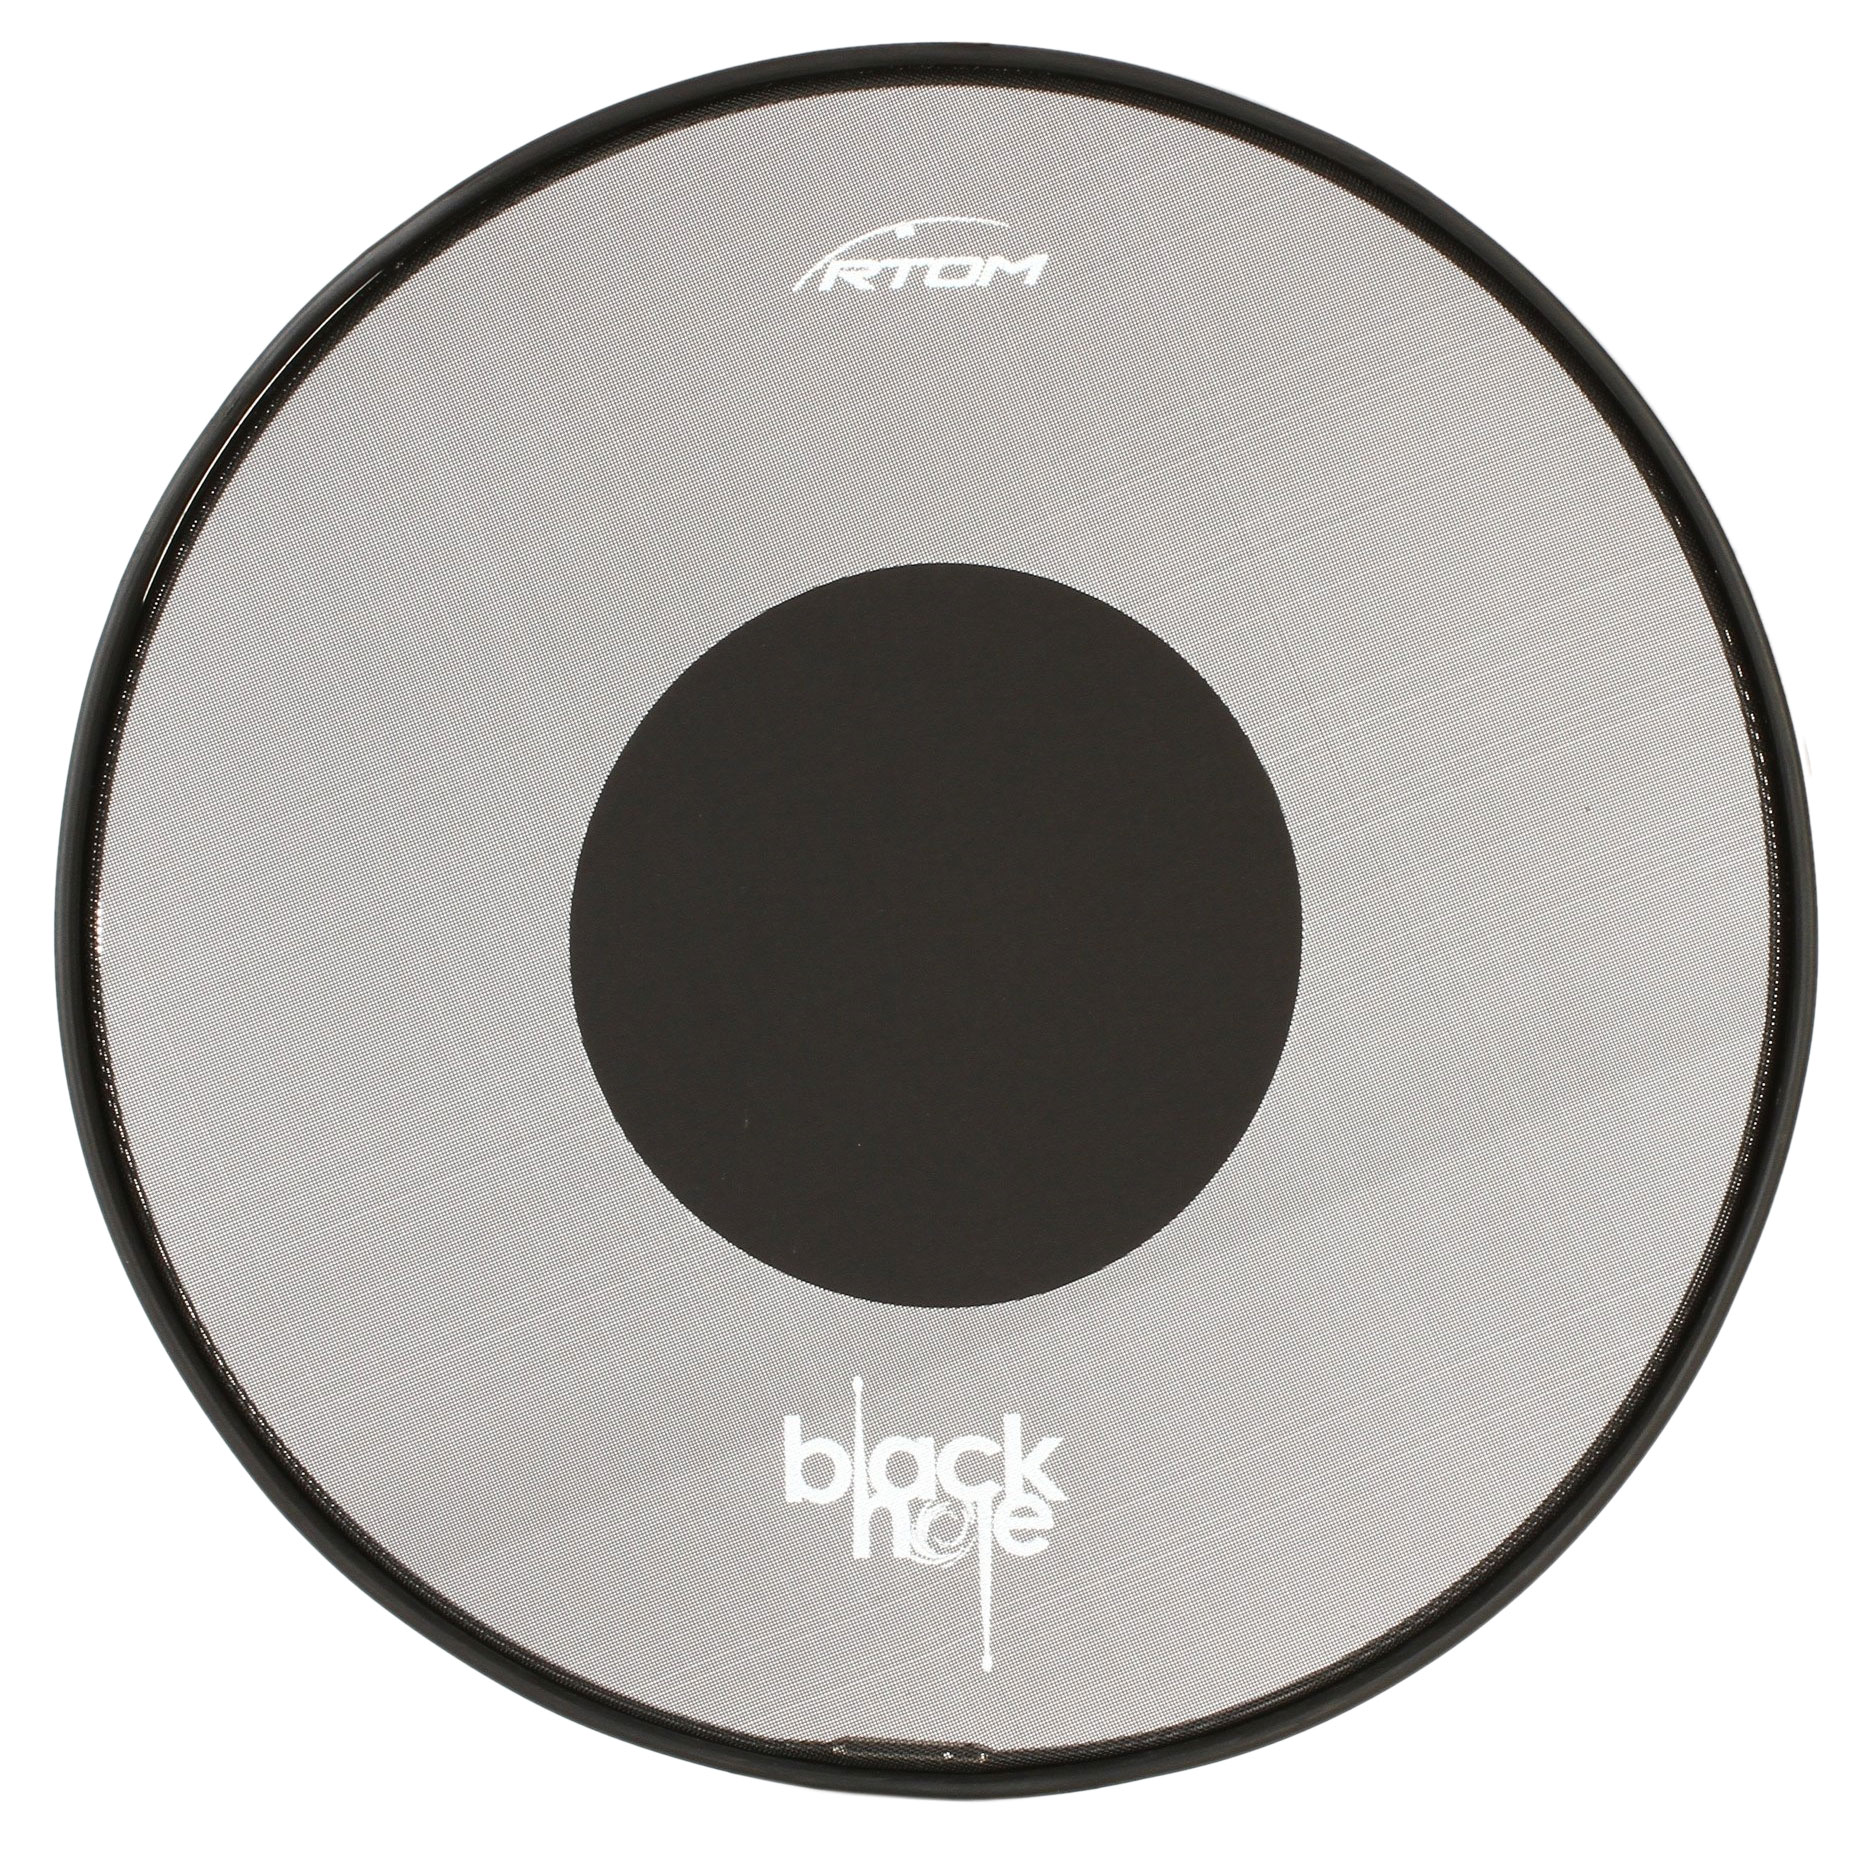 "RTOM 24"" Black Hole Snap-On Bass Drum Practice Pad with Tuneable Mesh Head"